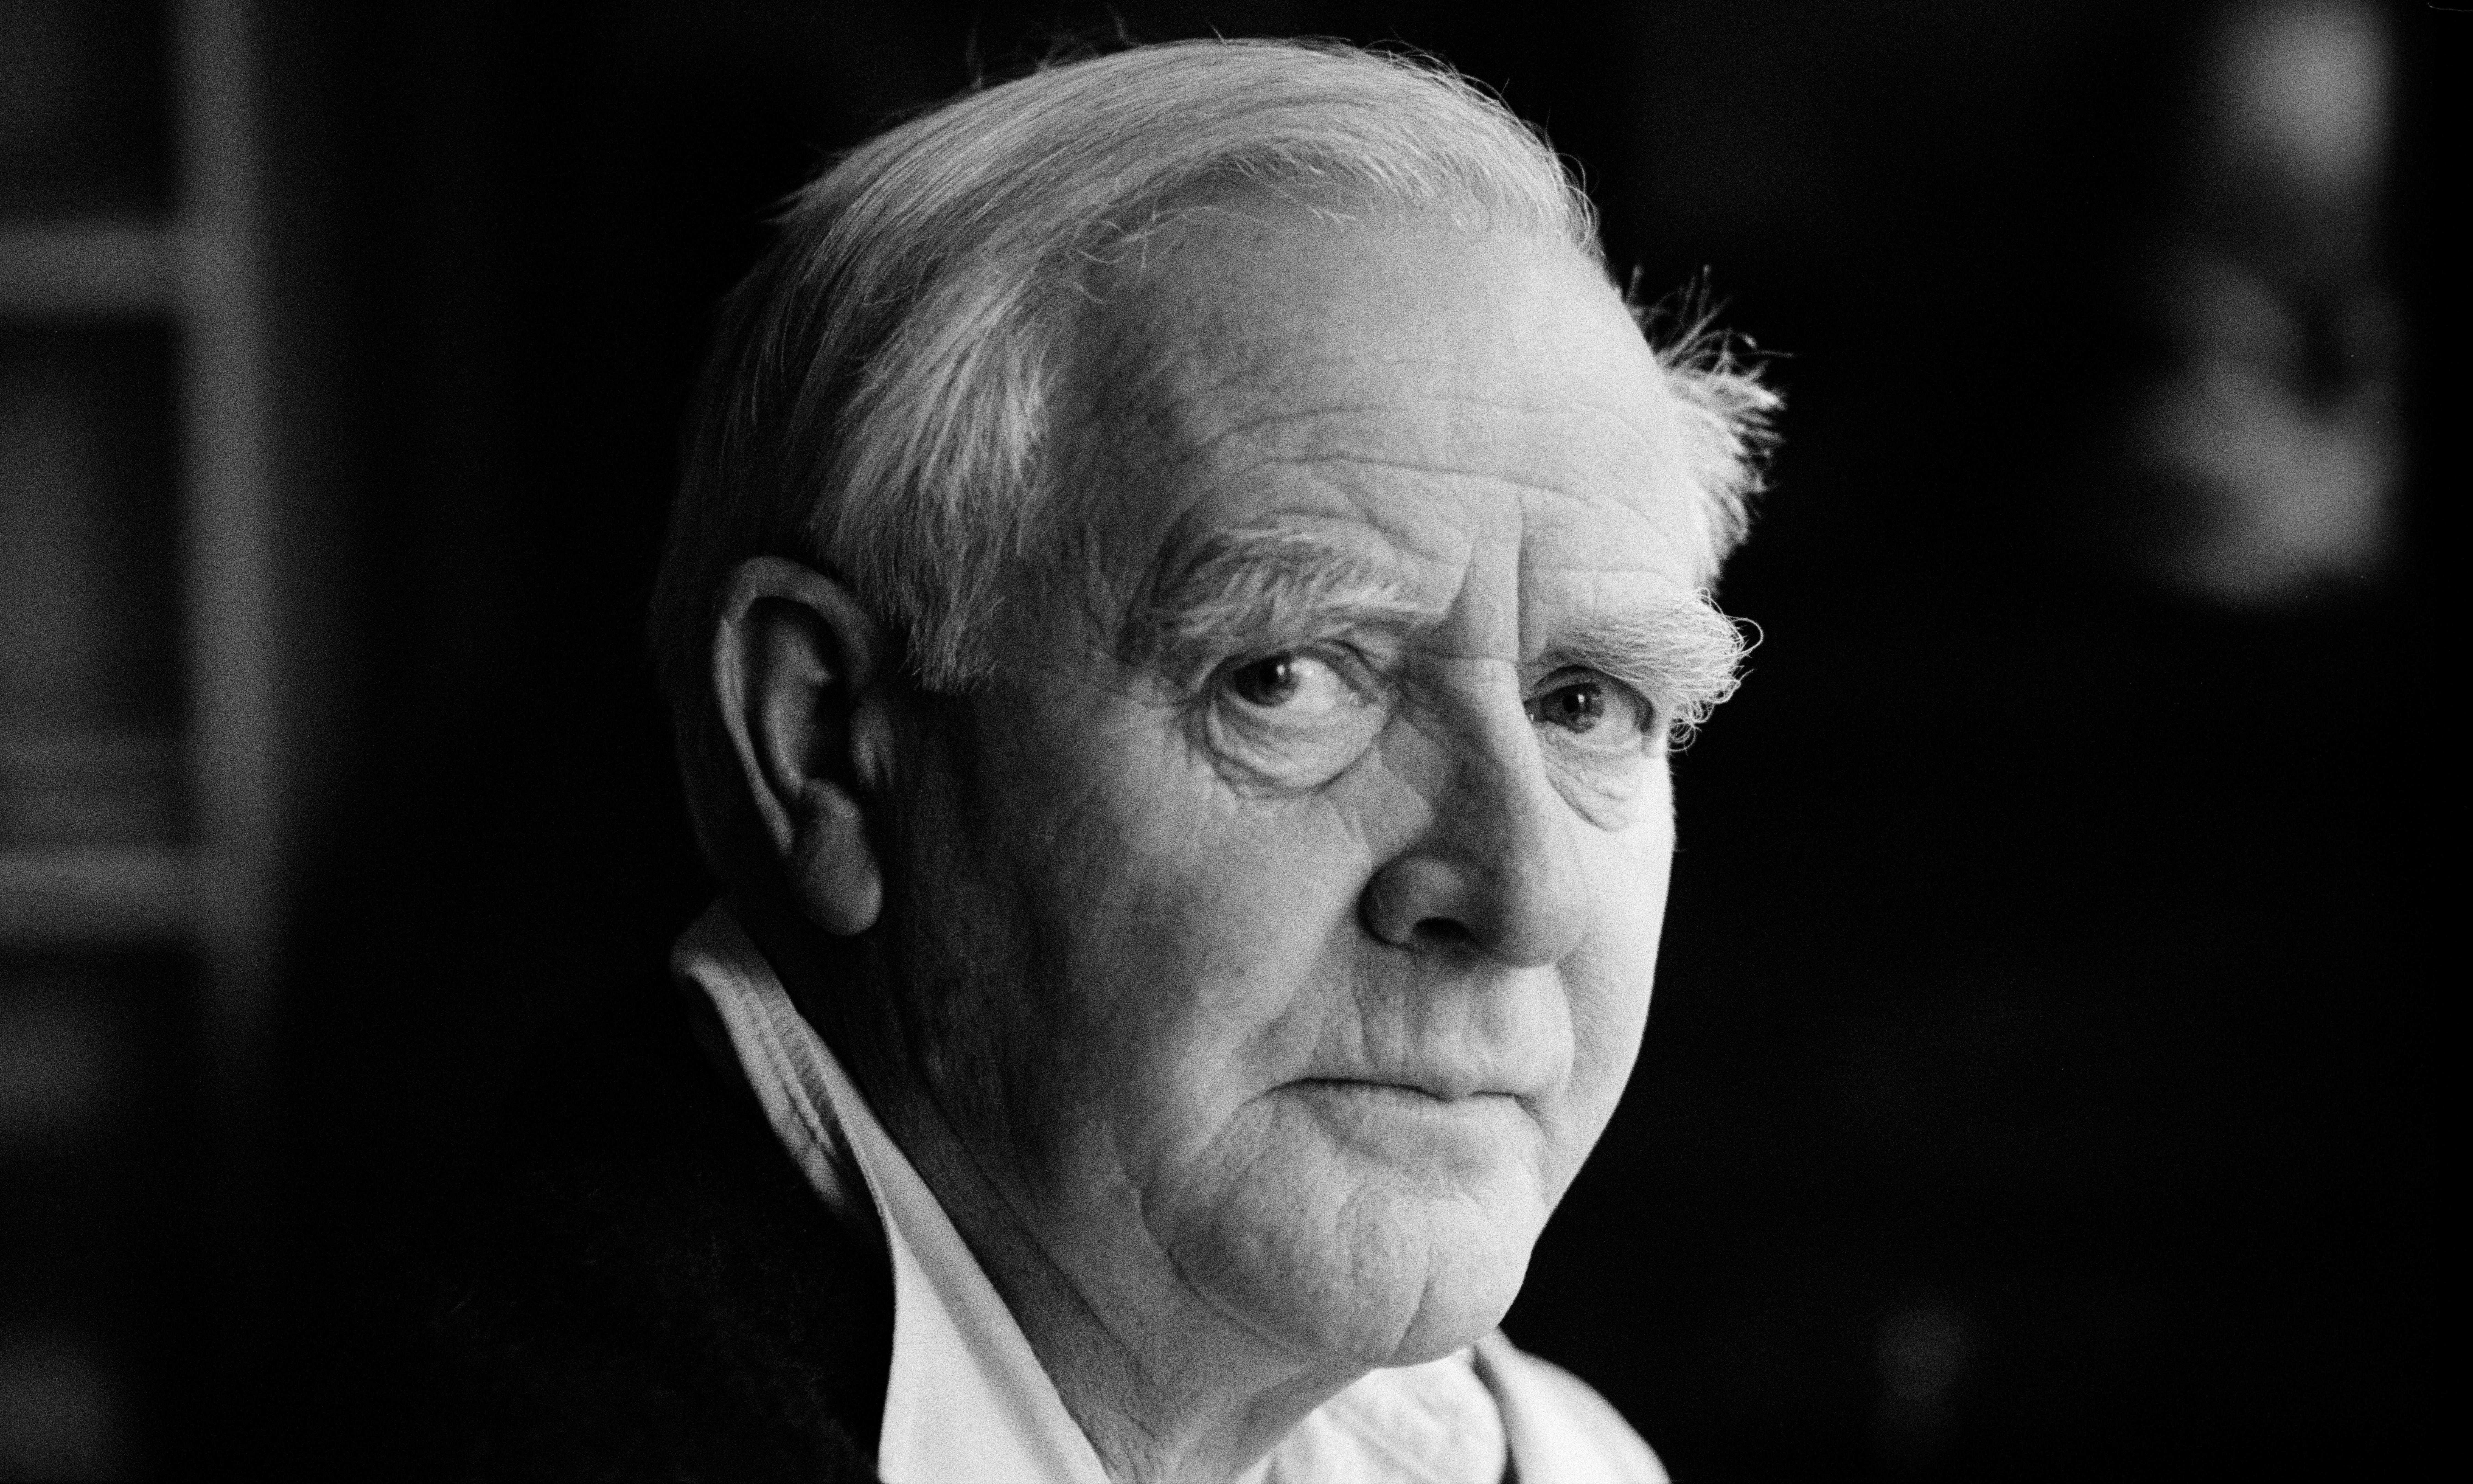 John le Carré to tackle 'division and rage' of 2018 in new novel